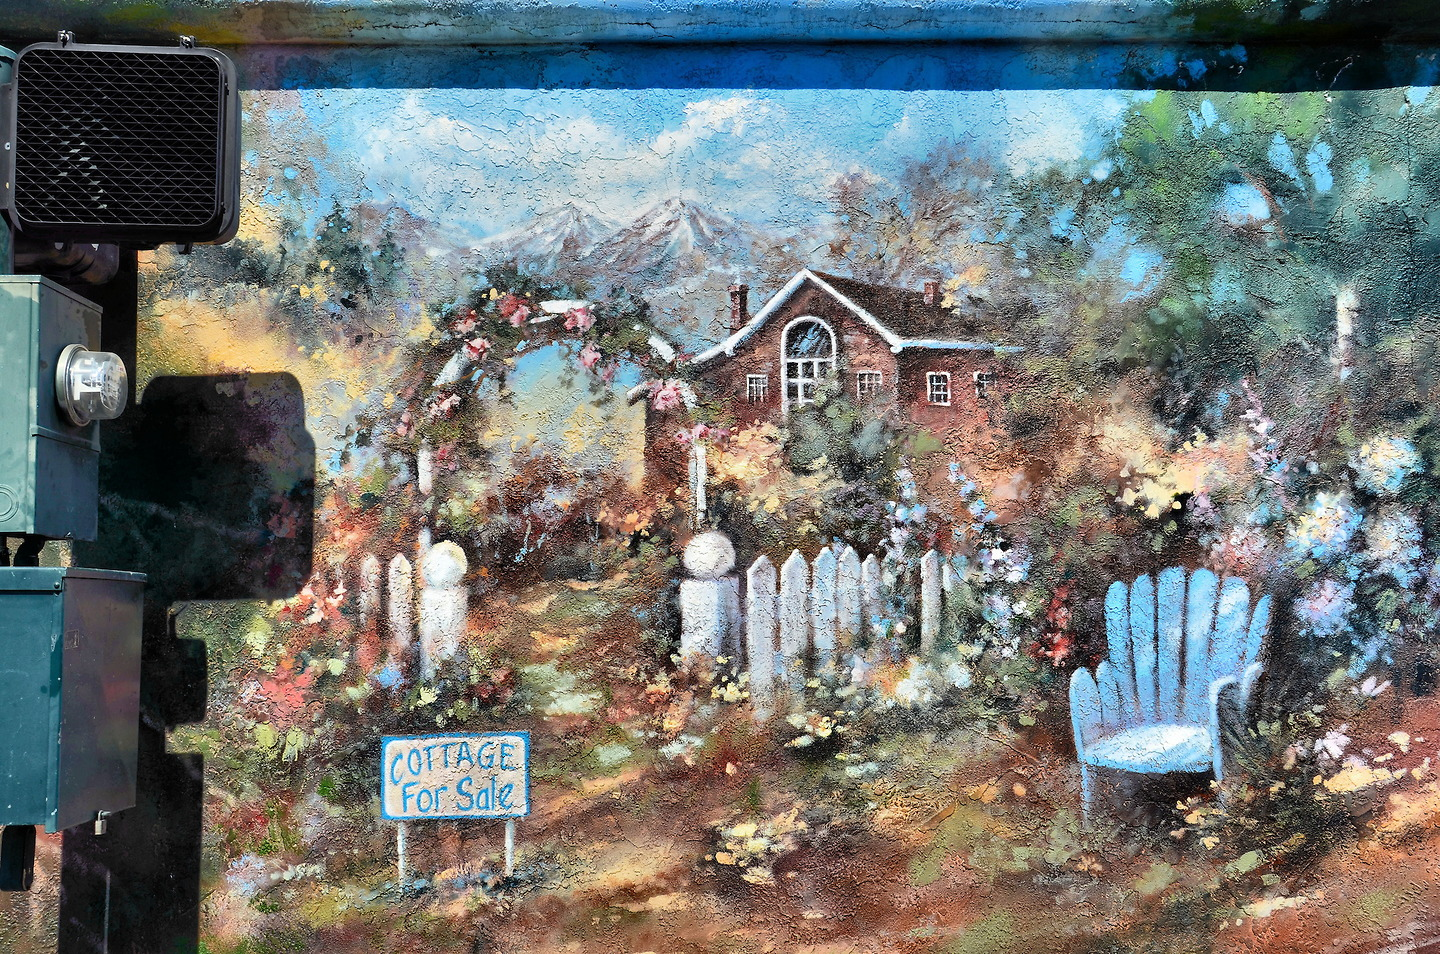 cottage for sale mural in grants pass oregon encircle photos